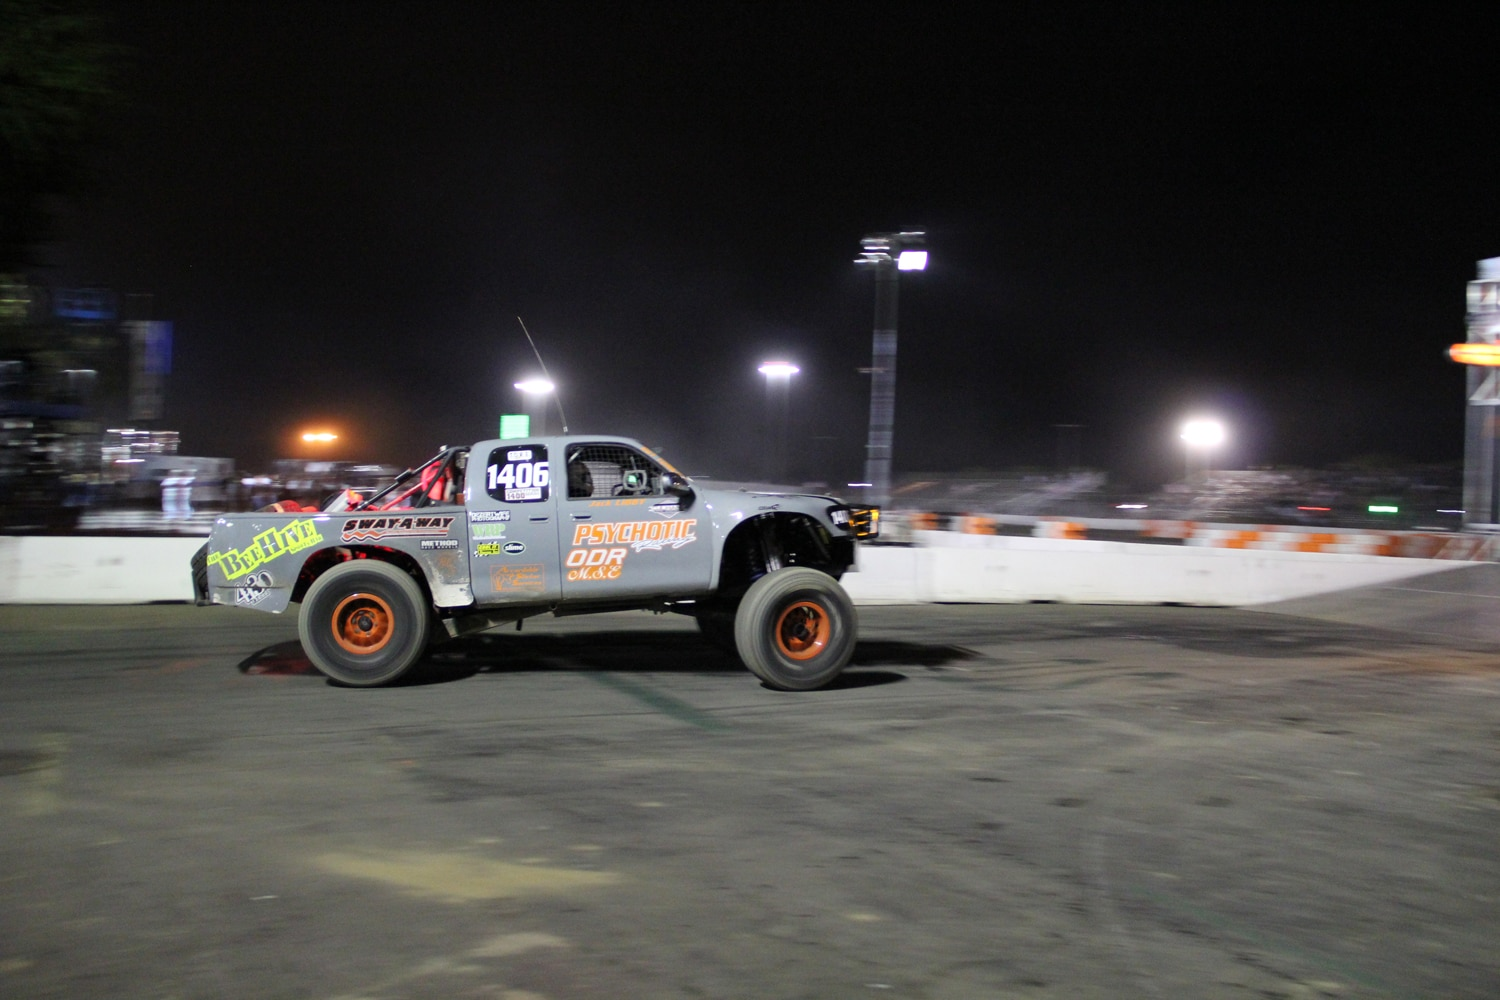 Stadium Super Trucks at SSSS  8  psychotic racing toyota tundra prerunner.JPG